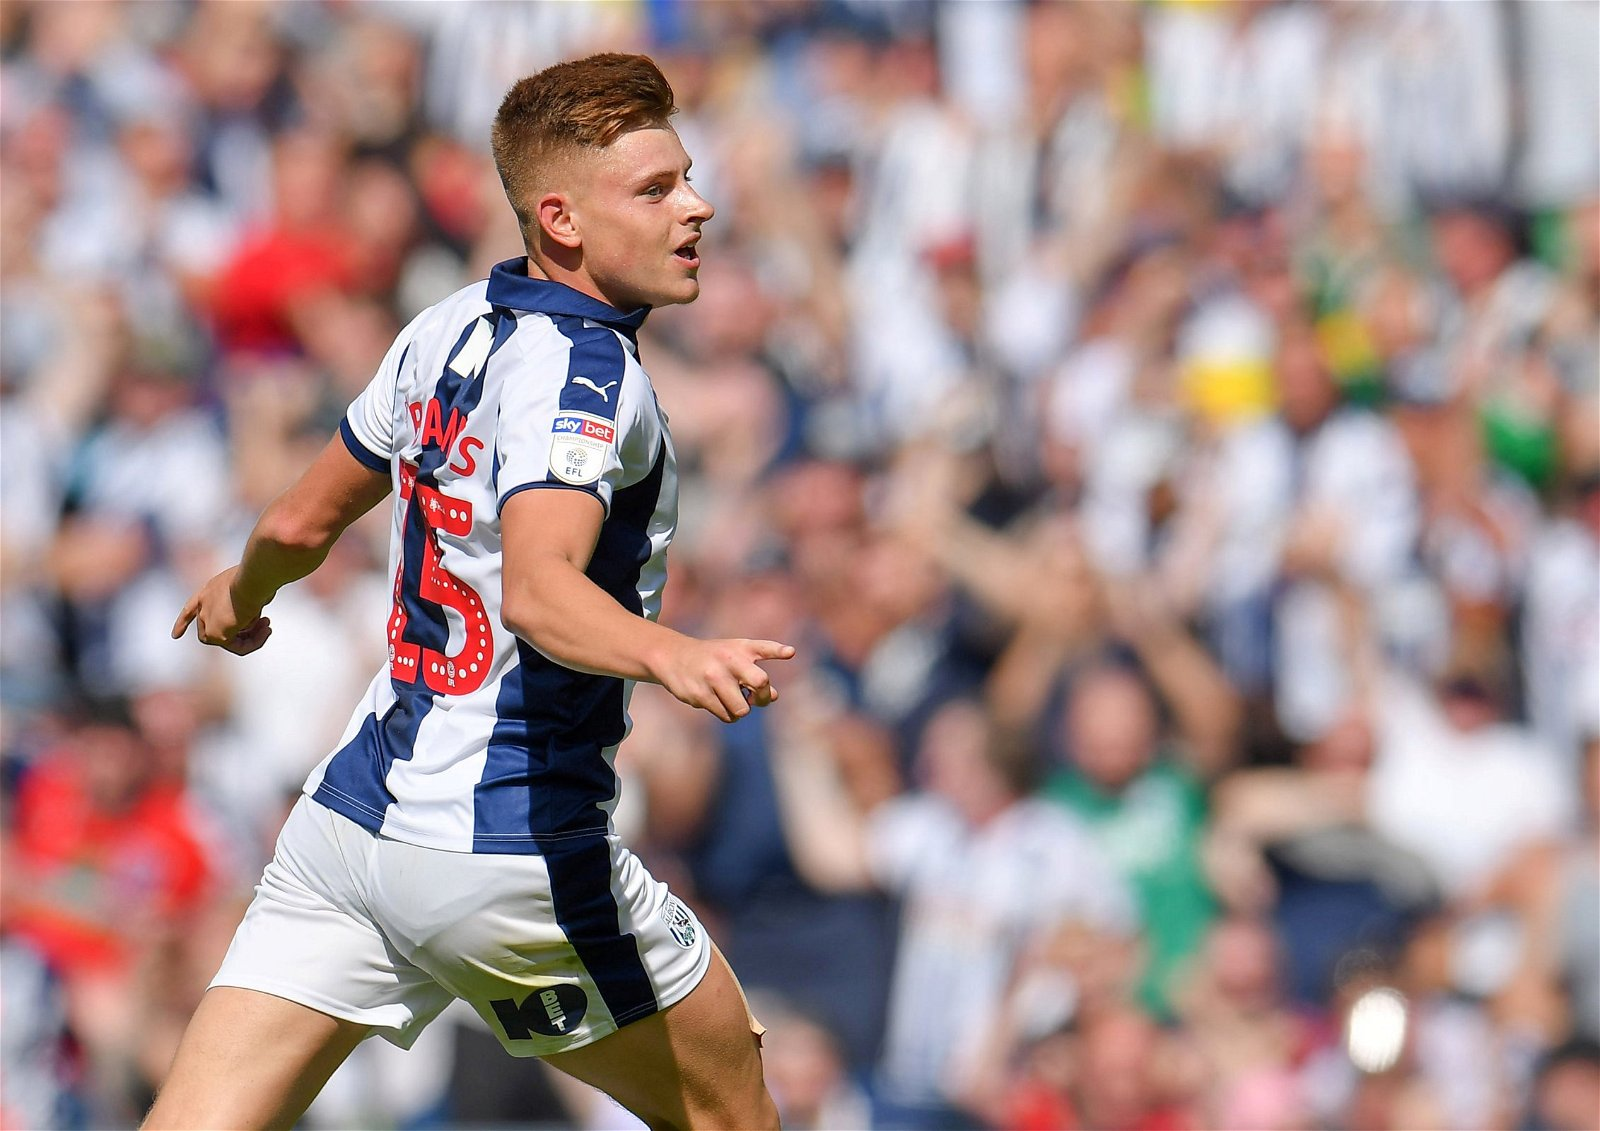 West Broms Harvey Barnes celebrates scoring their goal vs Bolton - Promotion secured, Robson-Kanu benched: Aftermath of potential Baggies swoop for creative star